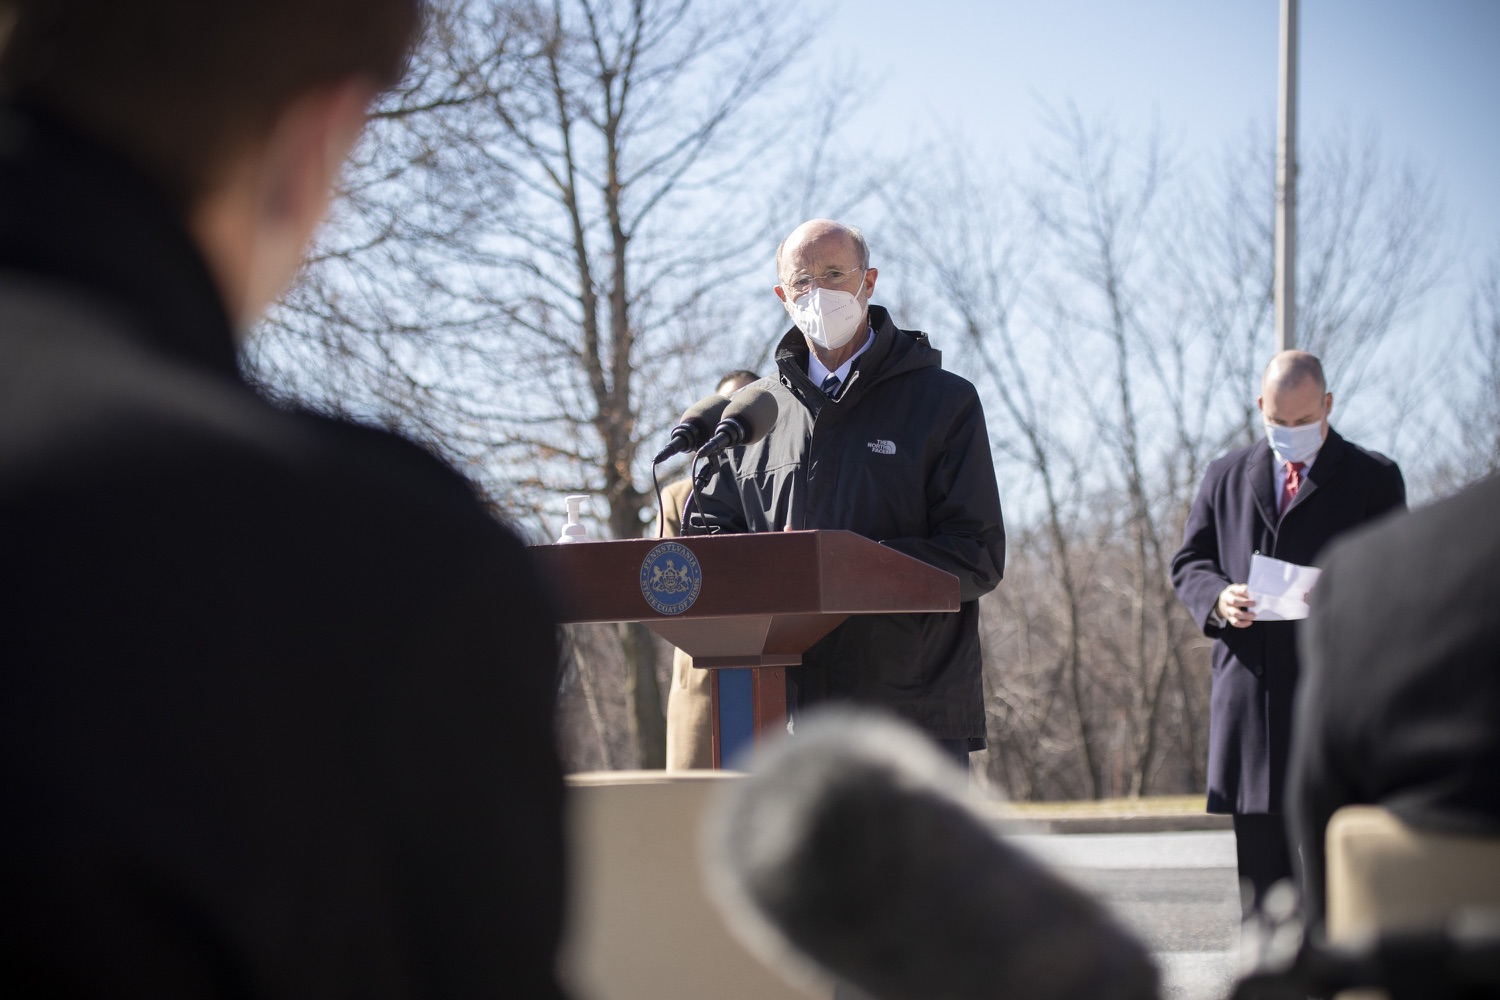 "<a href=""https://filesource.wostreaming.net/commonwealthofpa/photo/18560_gov_chirp_dz_09.jpg"" target=""_blank"">⇣ Download Photo<br></a>Pennsylvania Governor Tom Wolf answers questions from the press.  Governor Tom Wolf announced today that the hospitality industry will soon be able to apply for immediate relief through the COVID-19 Hospitality Industry Recovery Program (CHIRP), a new grant program established by the Wolf Administration to support local businesses in the hospitality industry that were affected by the COVID-19 pandemic. Harrisburg, PA  March 2, 2021. .."